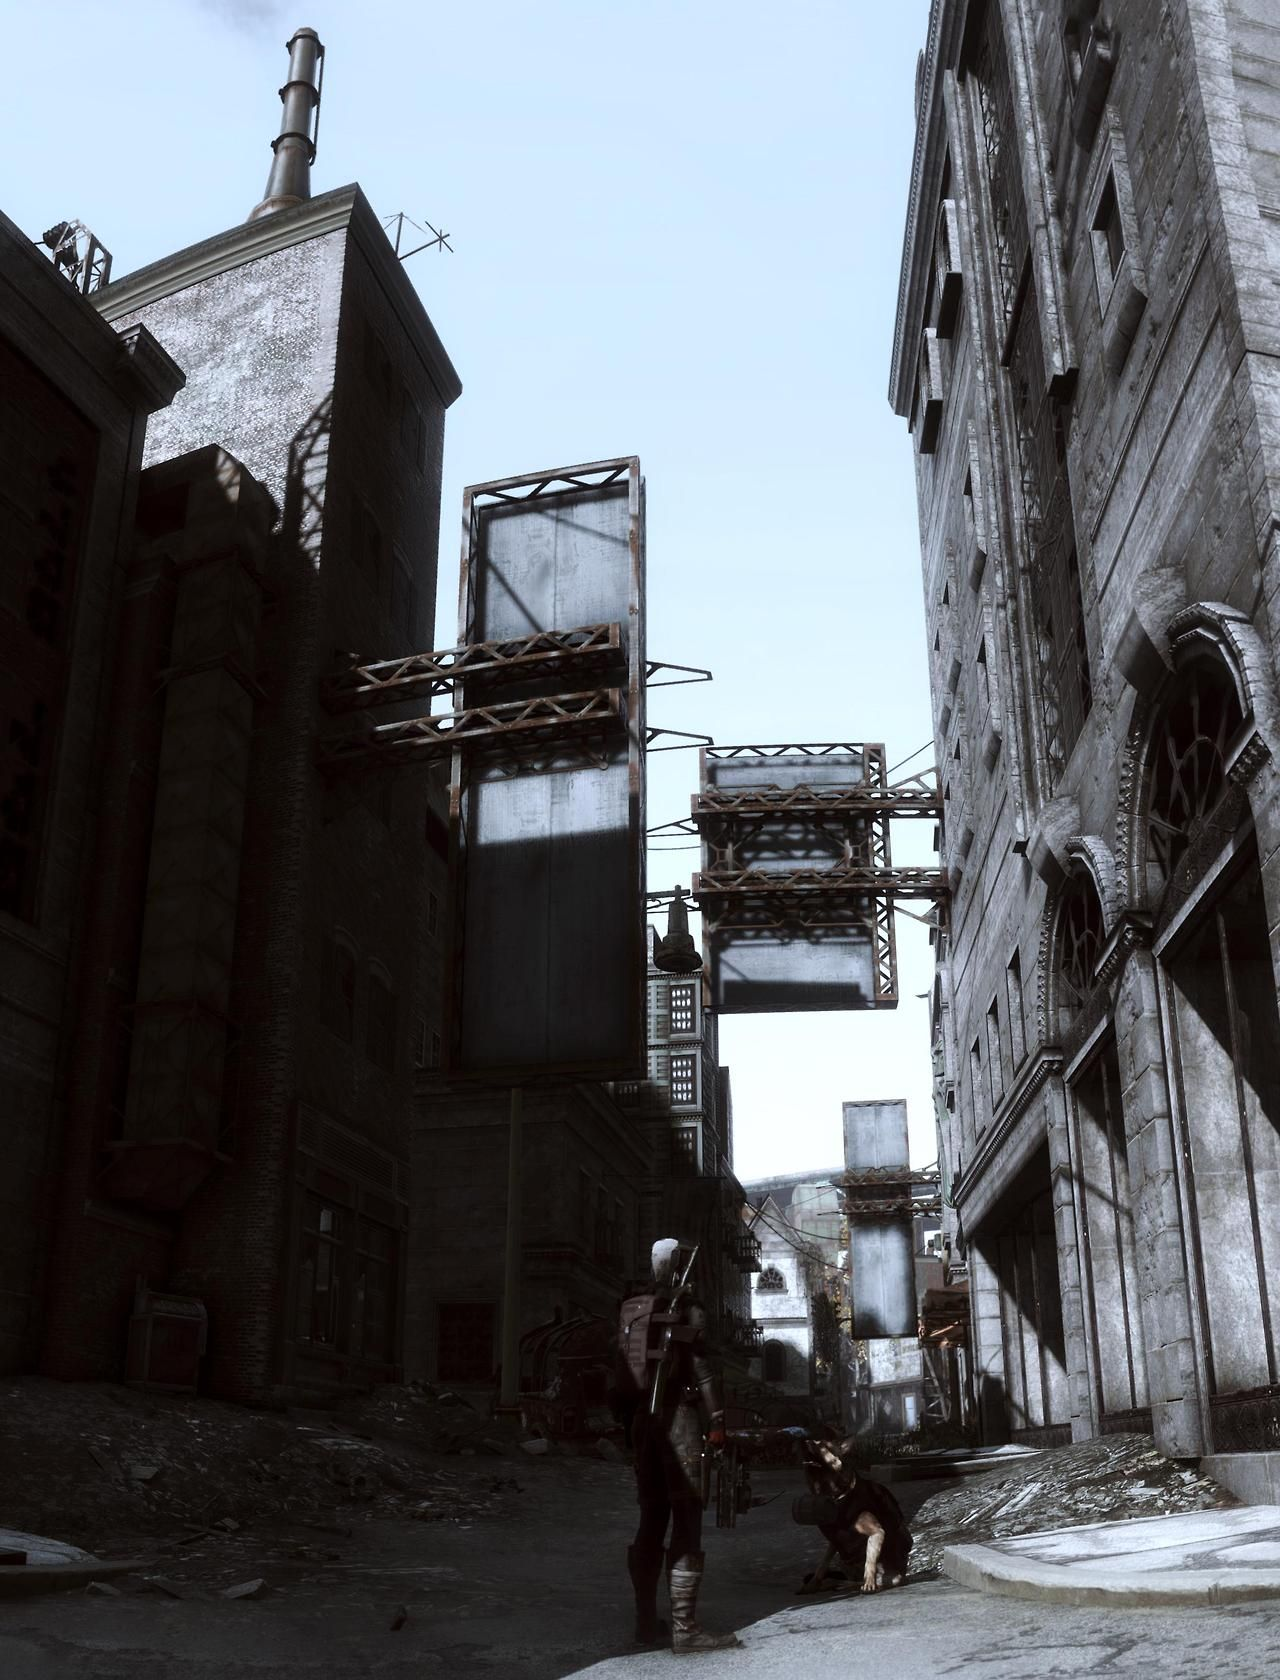 Fallout 4 ENB + ReShade (my own config)   Fallout   Fallout